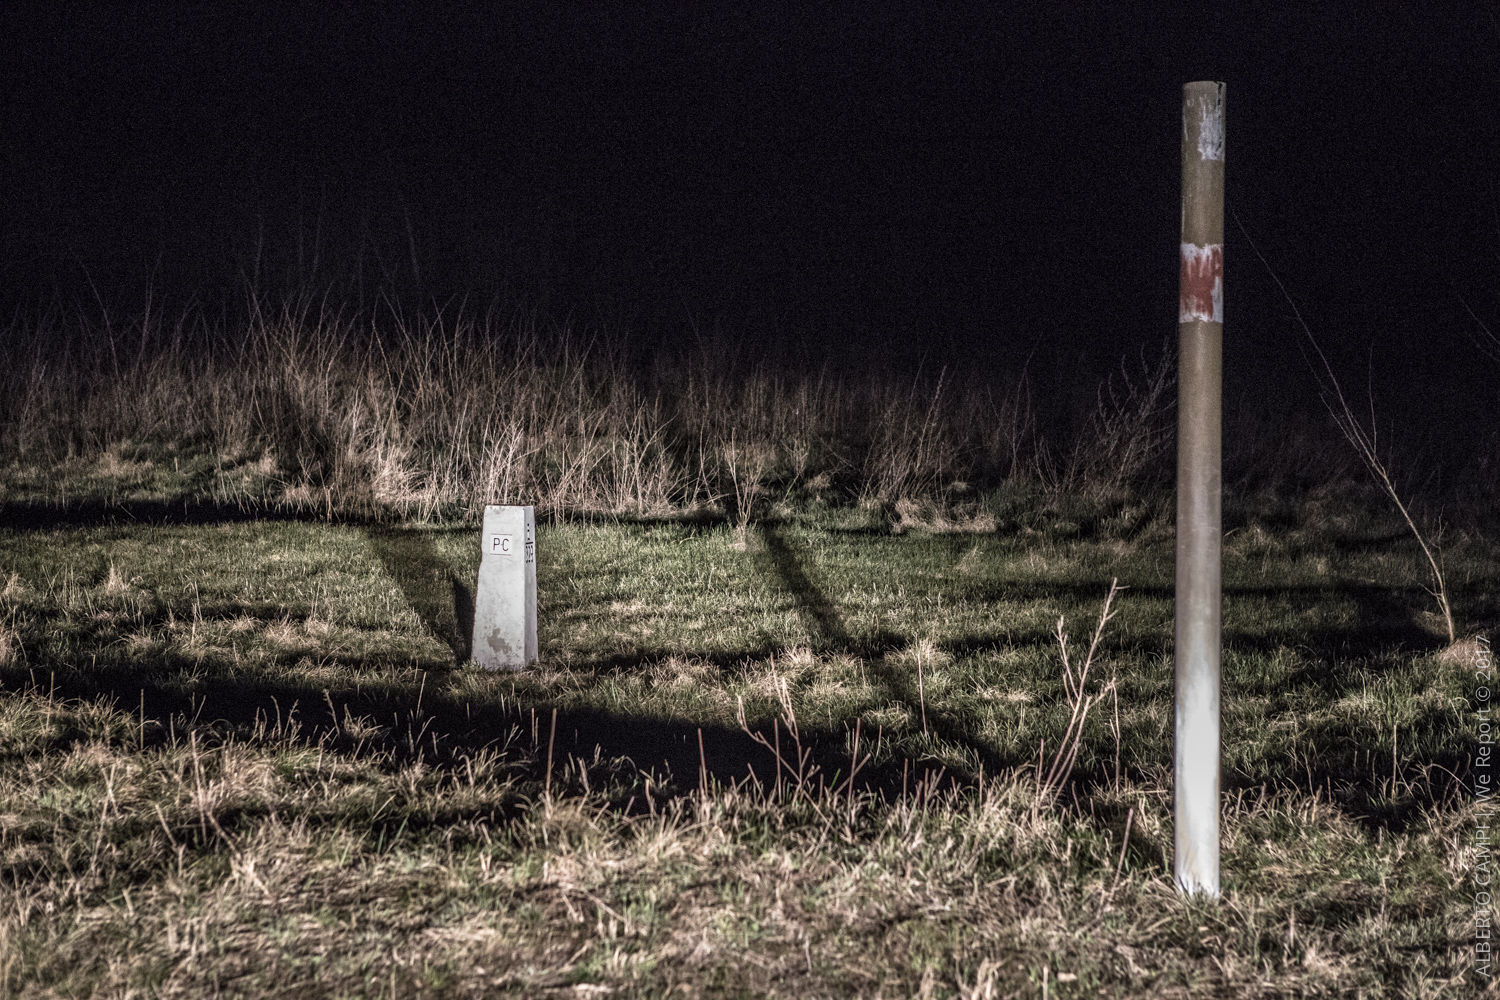 Boundary stone and pole marking the borderline. Subotica, Serbia, March 2015